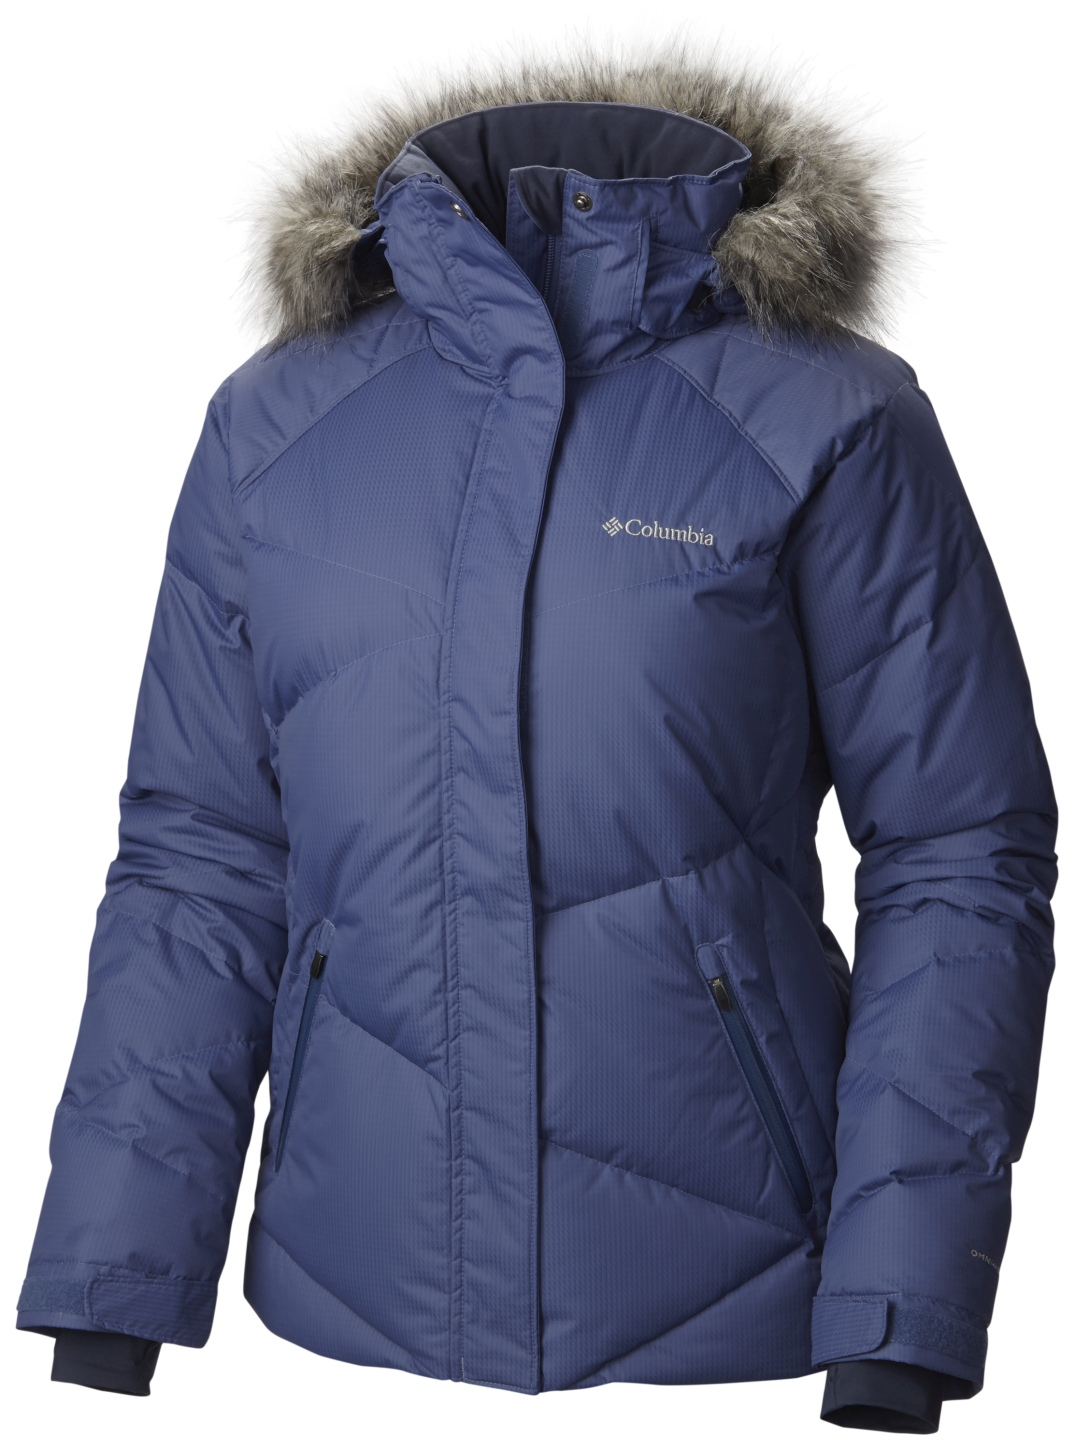 Columbia Women's Lay 'D' Down Ski Jacket Bluebell-30